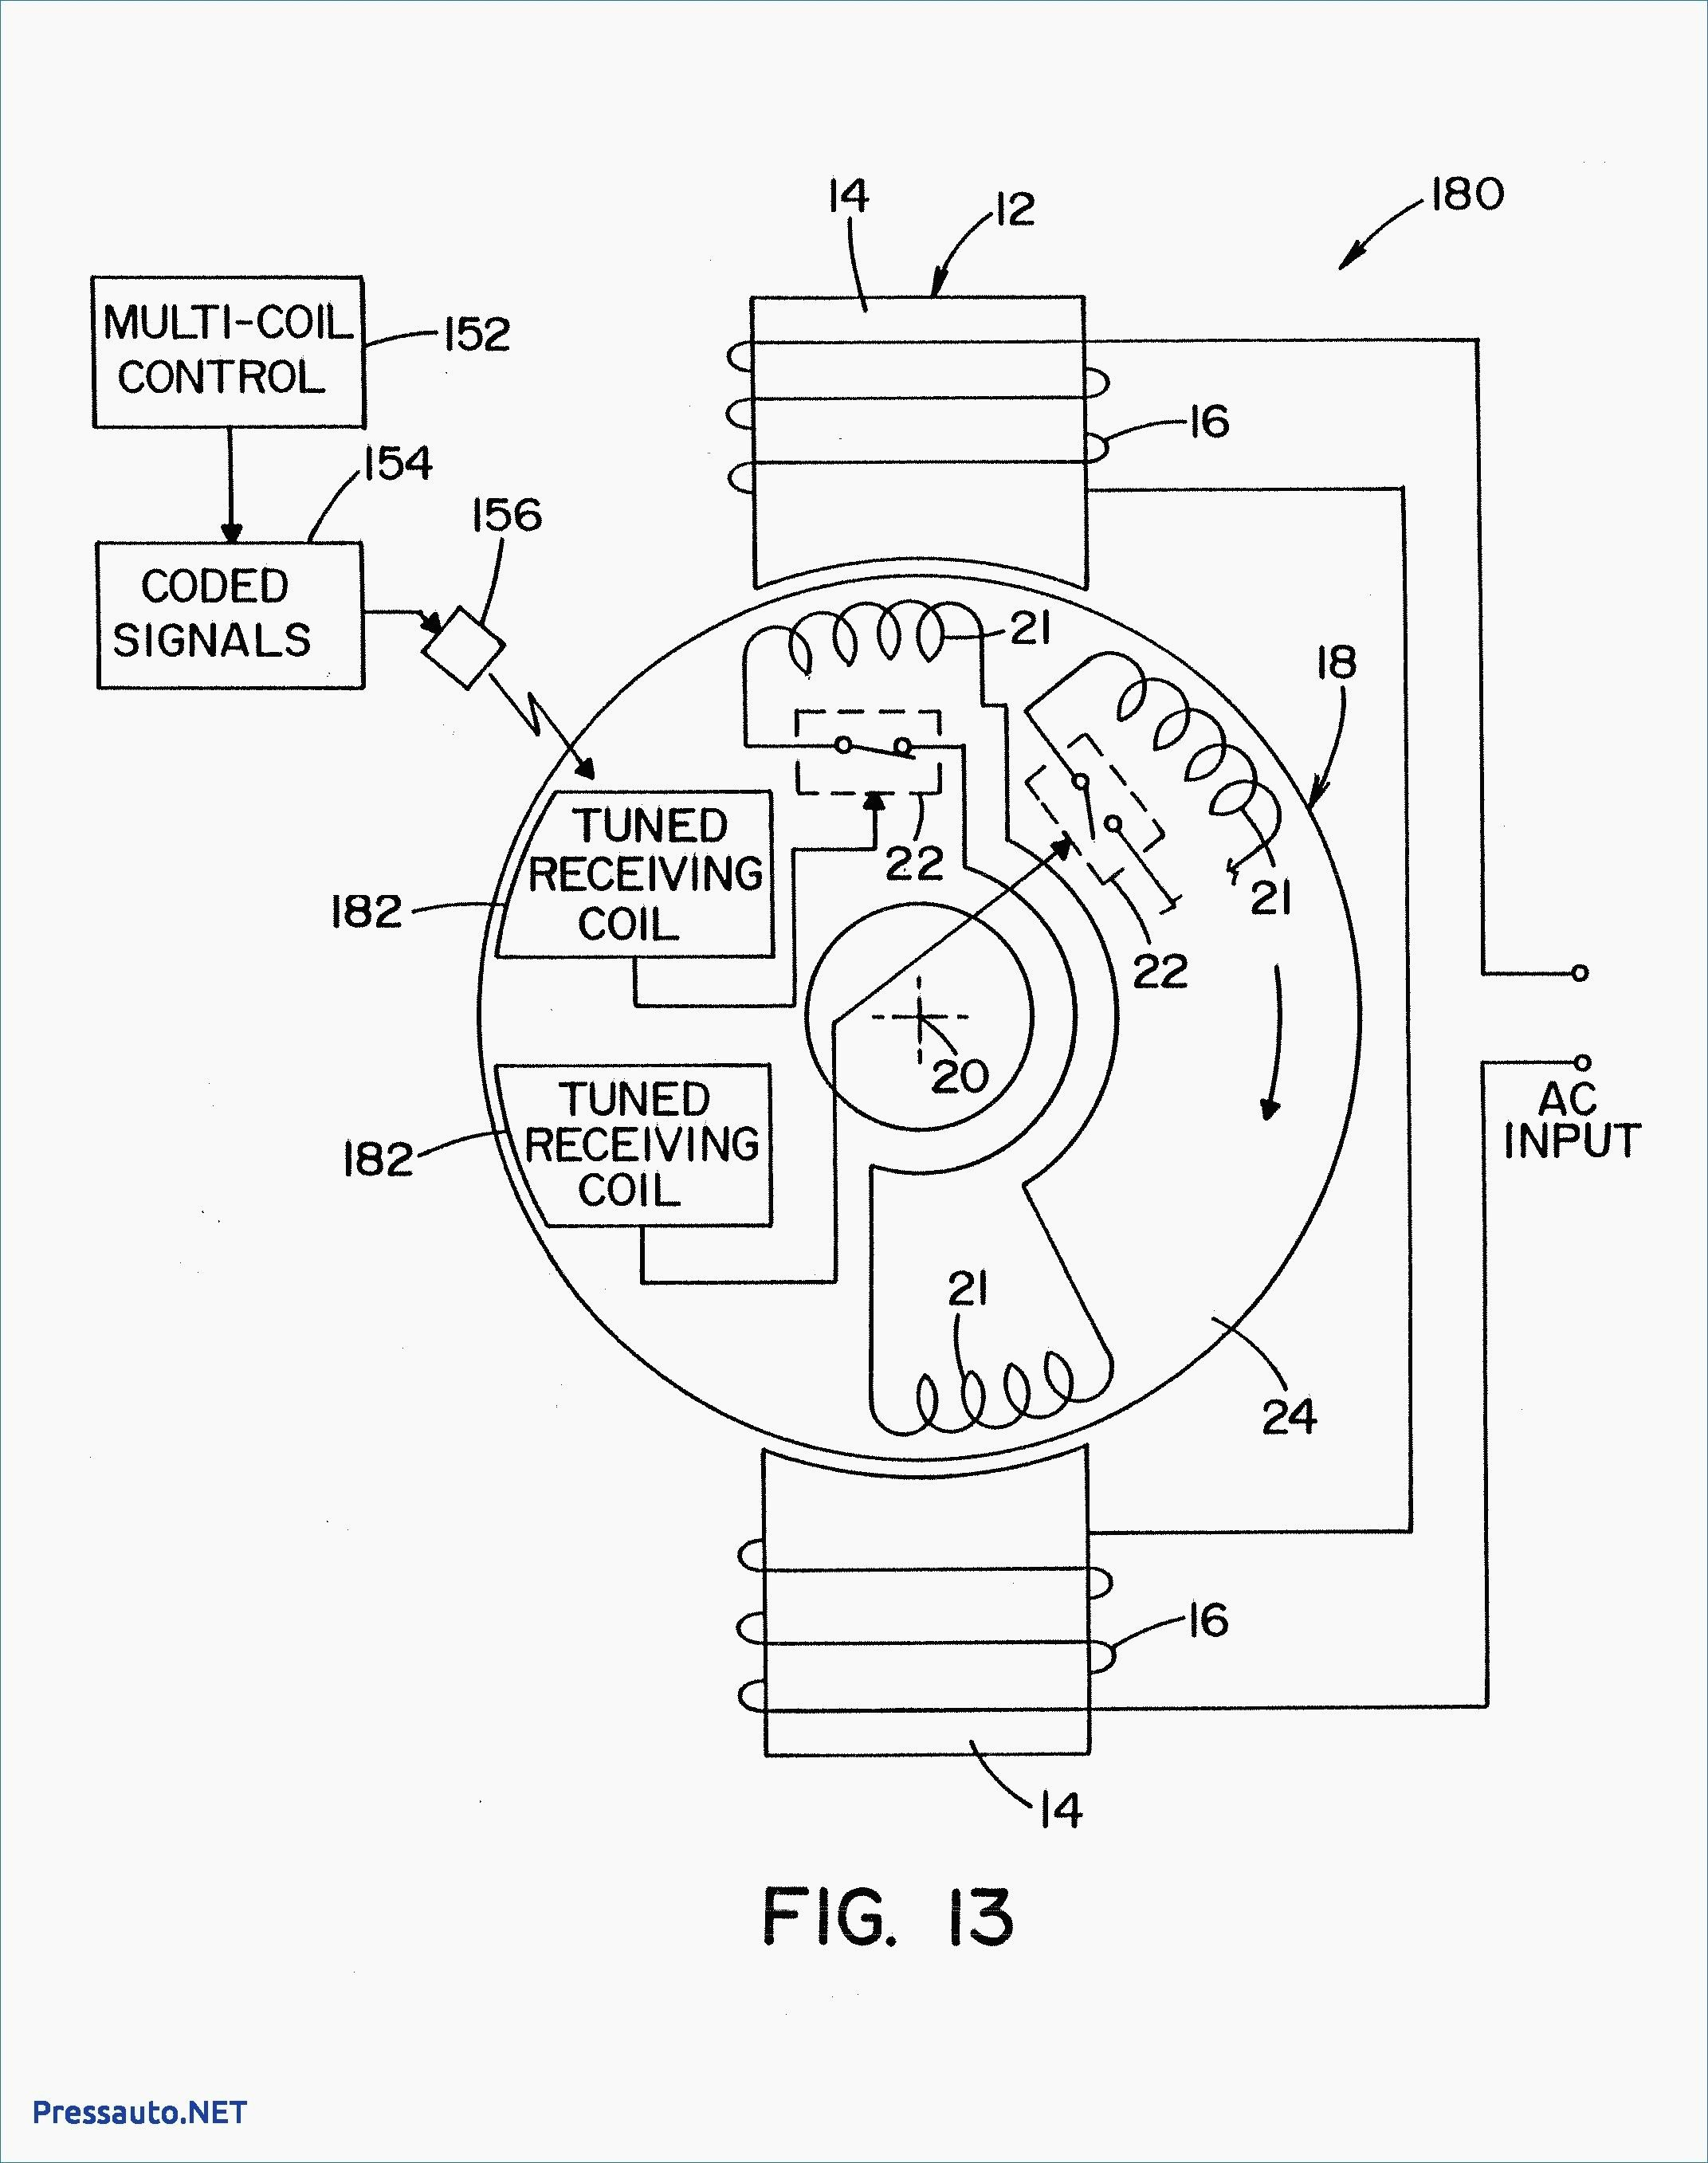 Unique Wiring Diagram Of Electric Desk Fan Diagram Diagramsample Diagramtemplate Wiringdiagram Dia Ceiling Fan Wiring Ceiling Fan Switch Ceiling Fan Parts